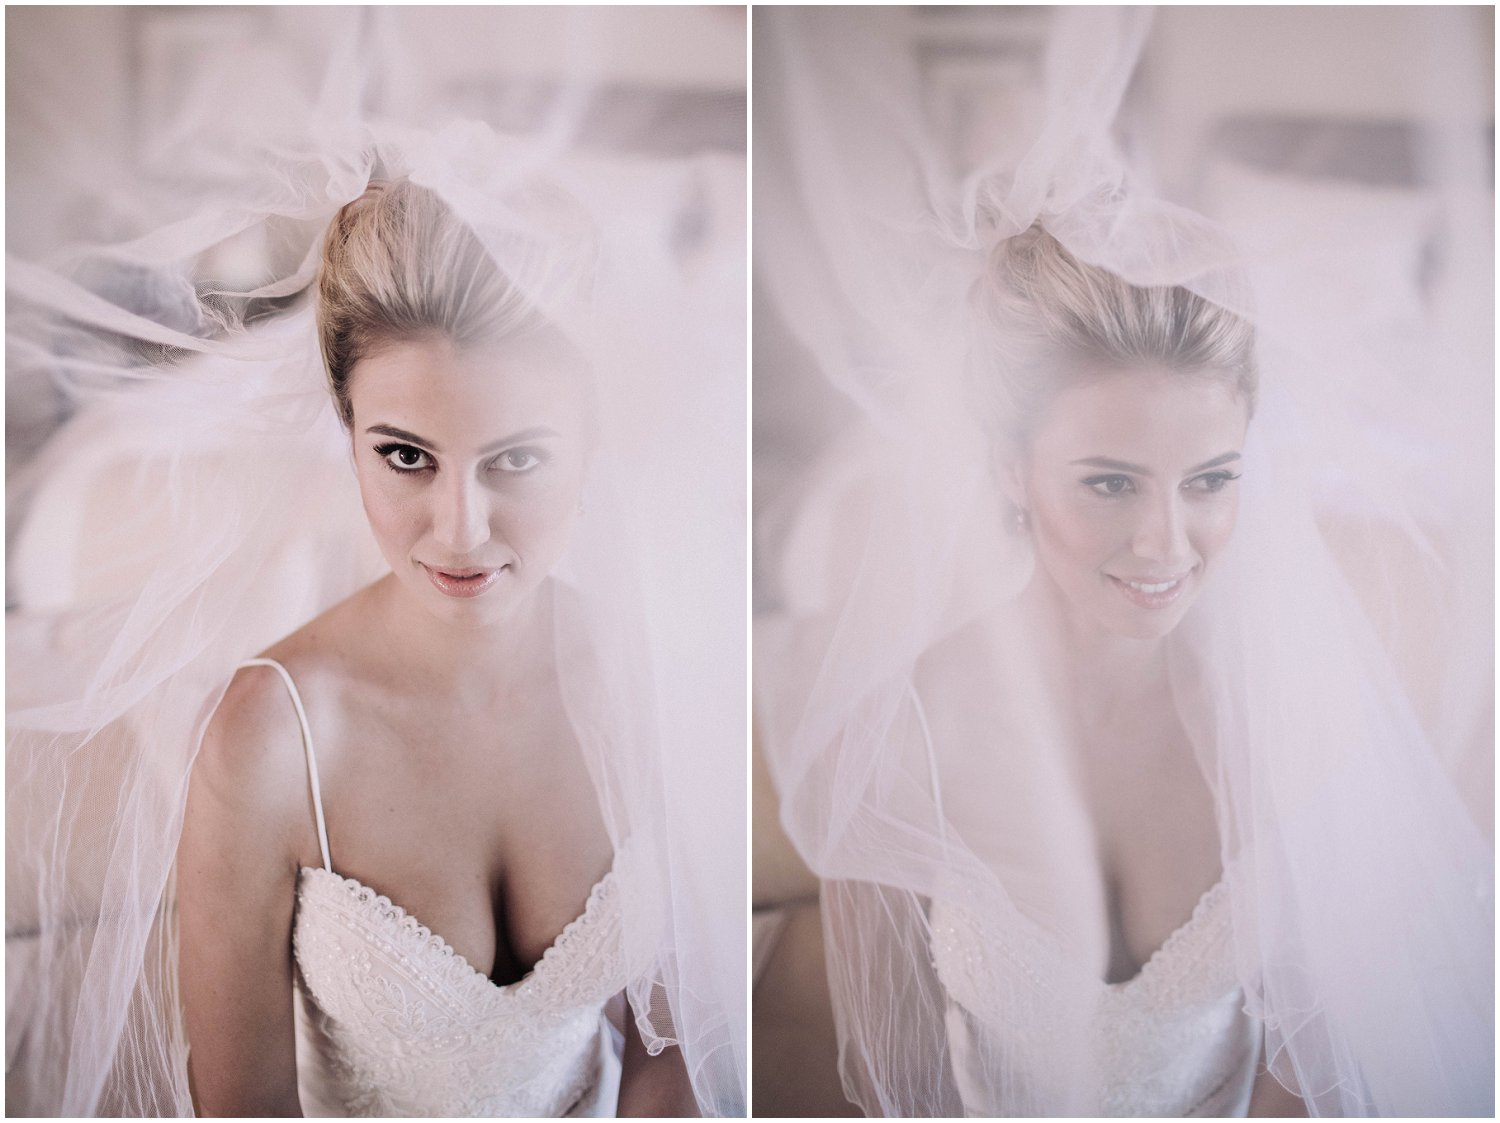 Top Artistic Documentary Wedding Photographer Cape Town South Africa Rue Kruger_0072.jpg